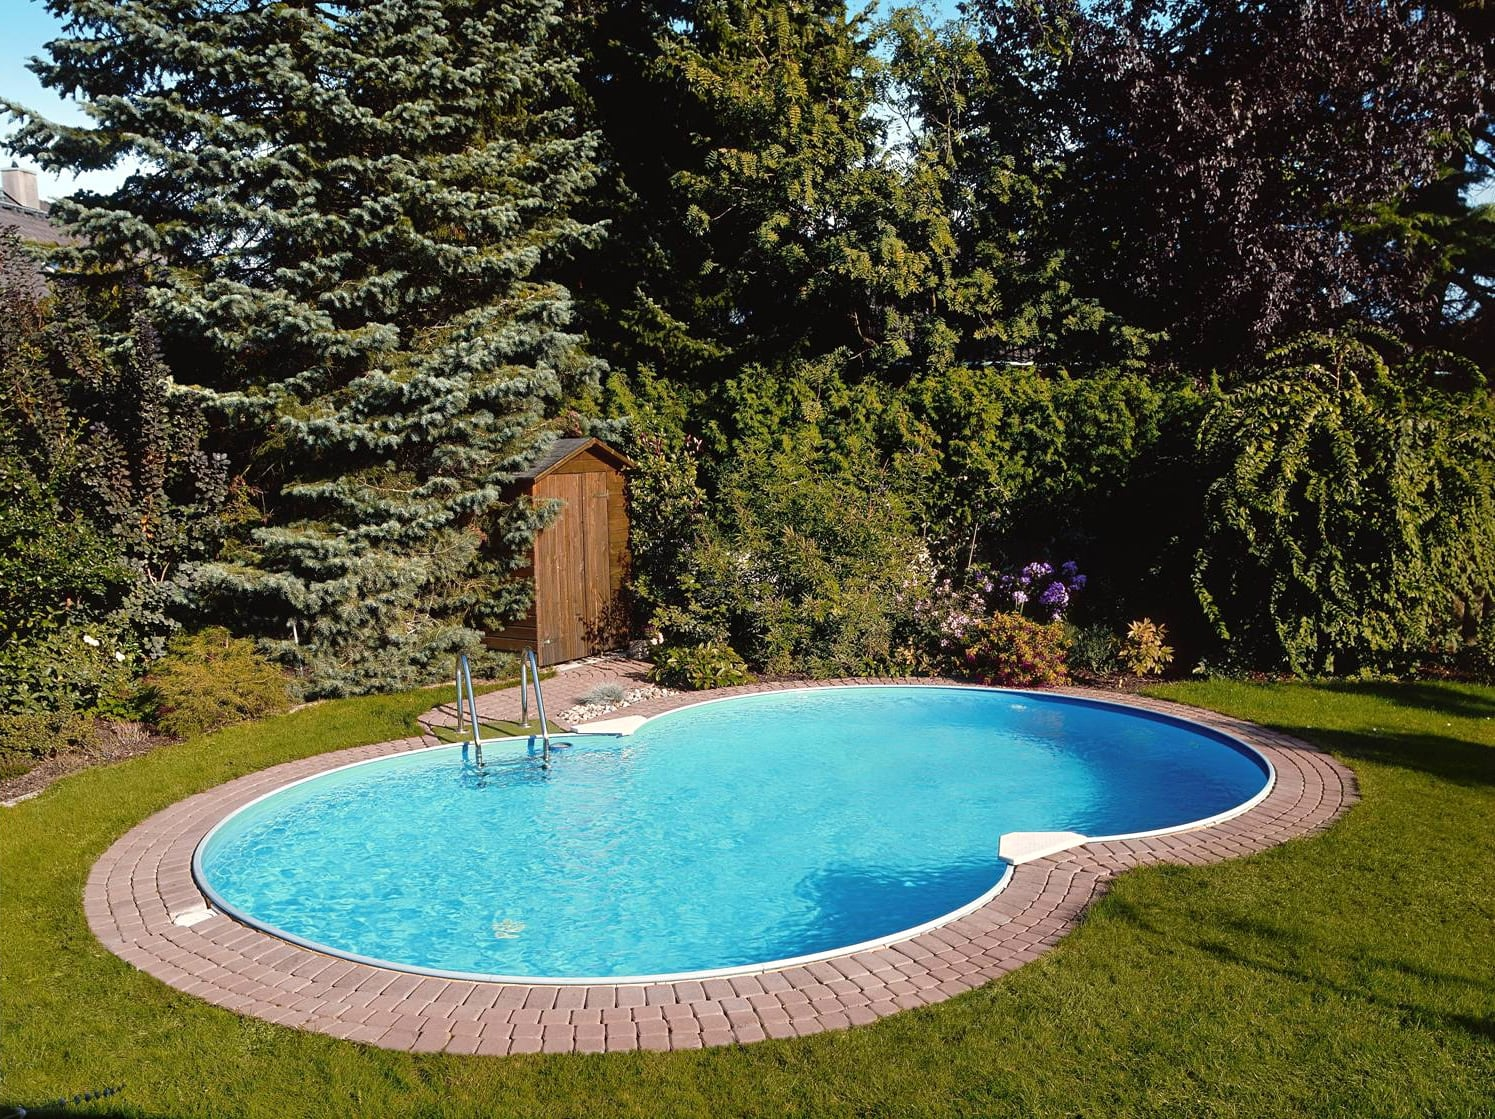 Piscineitalia kit piscina interrata in acciaio skyblue space 150 - Piscine interrate costi ...